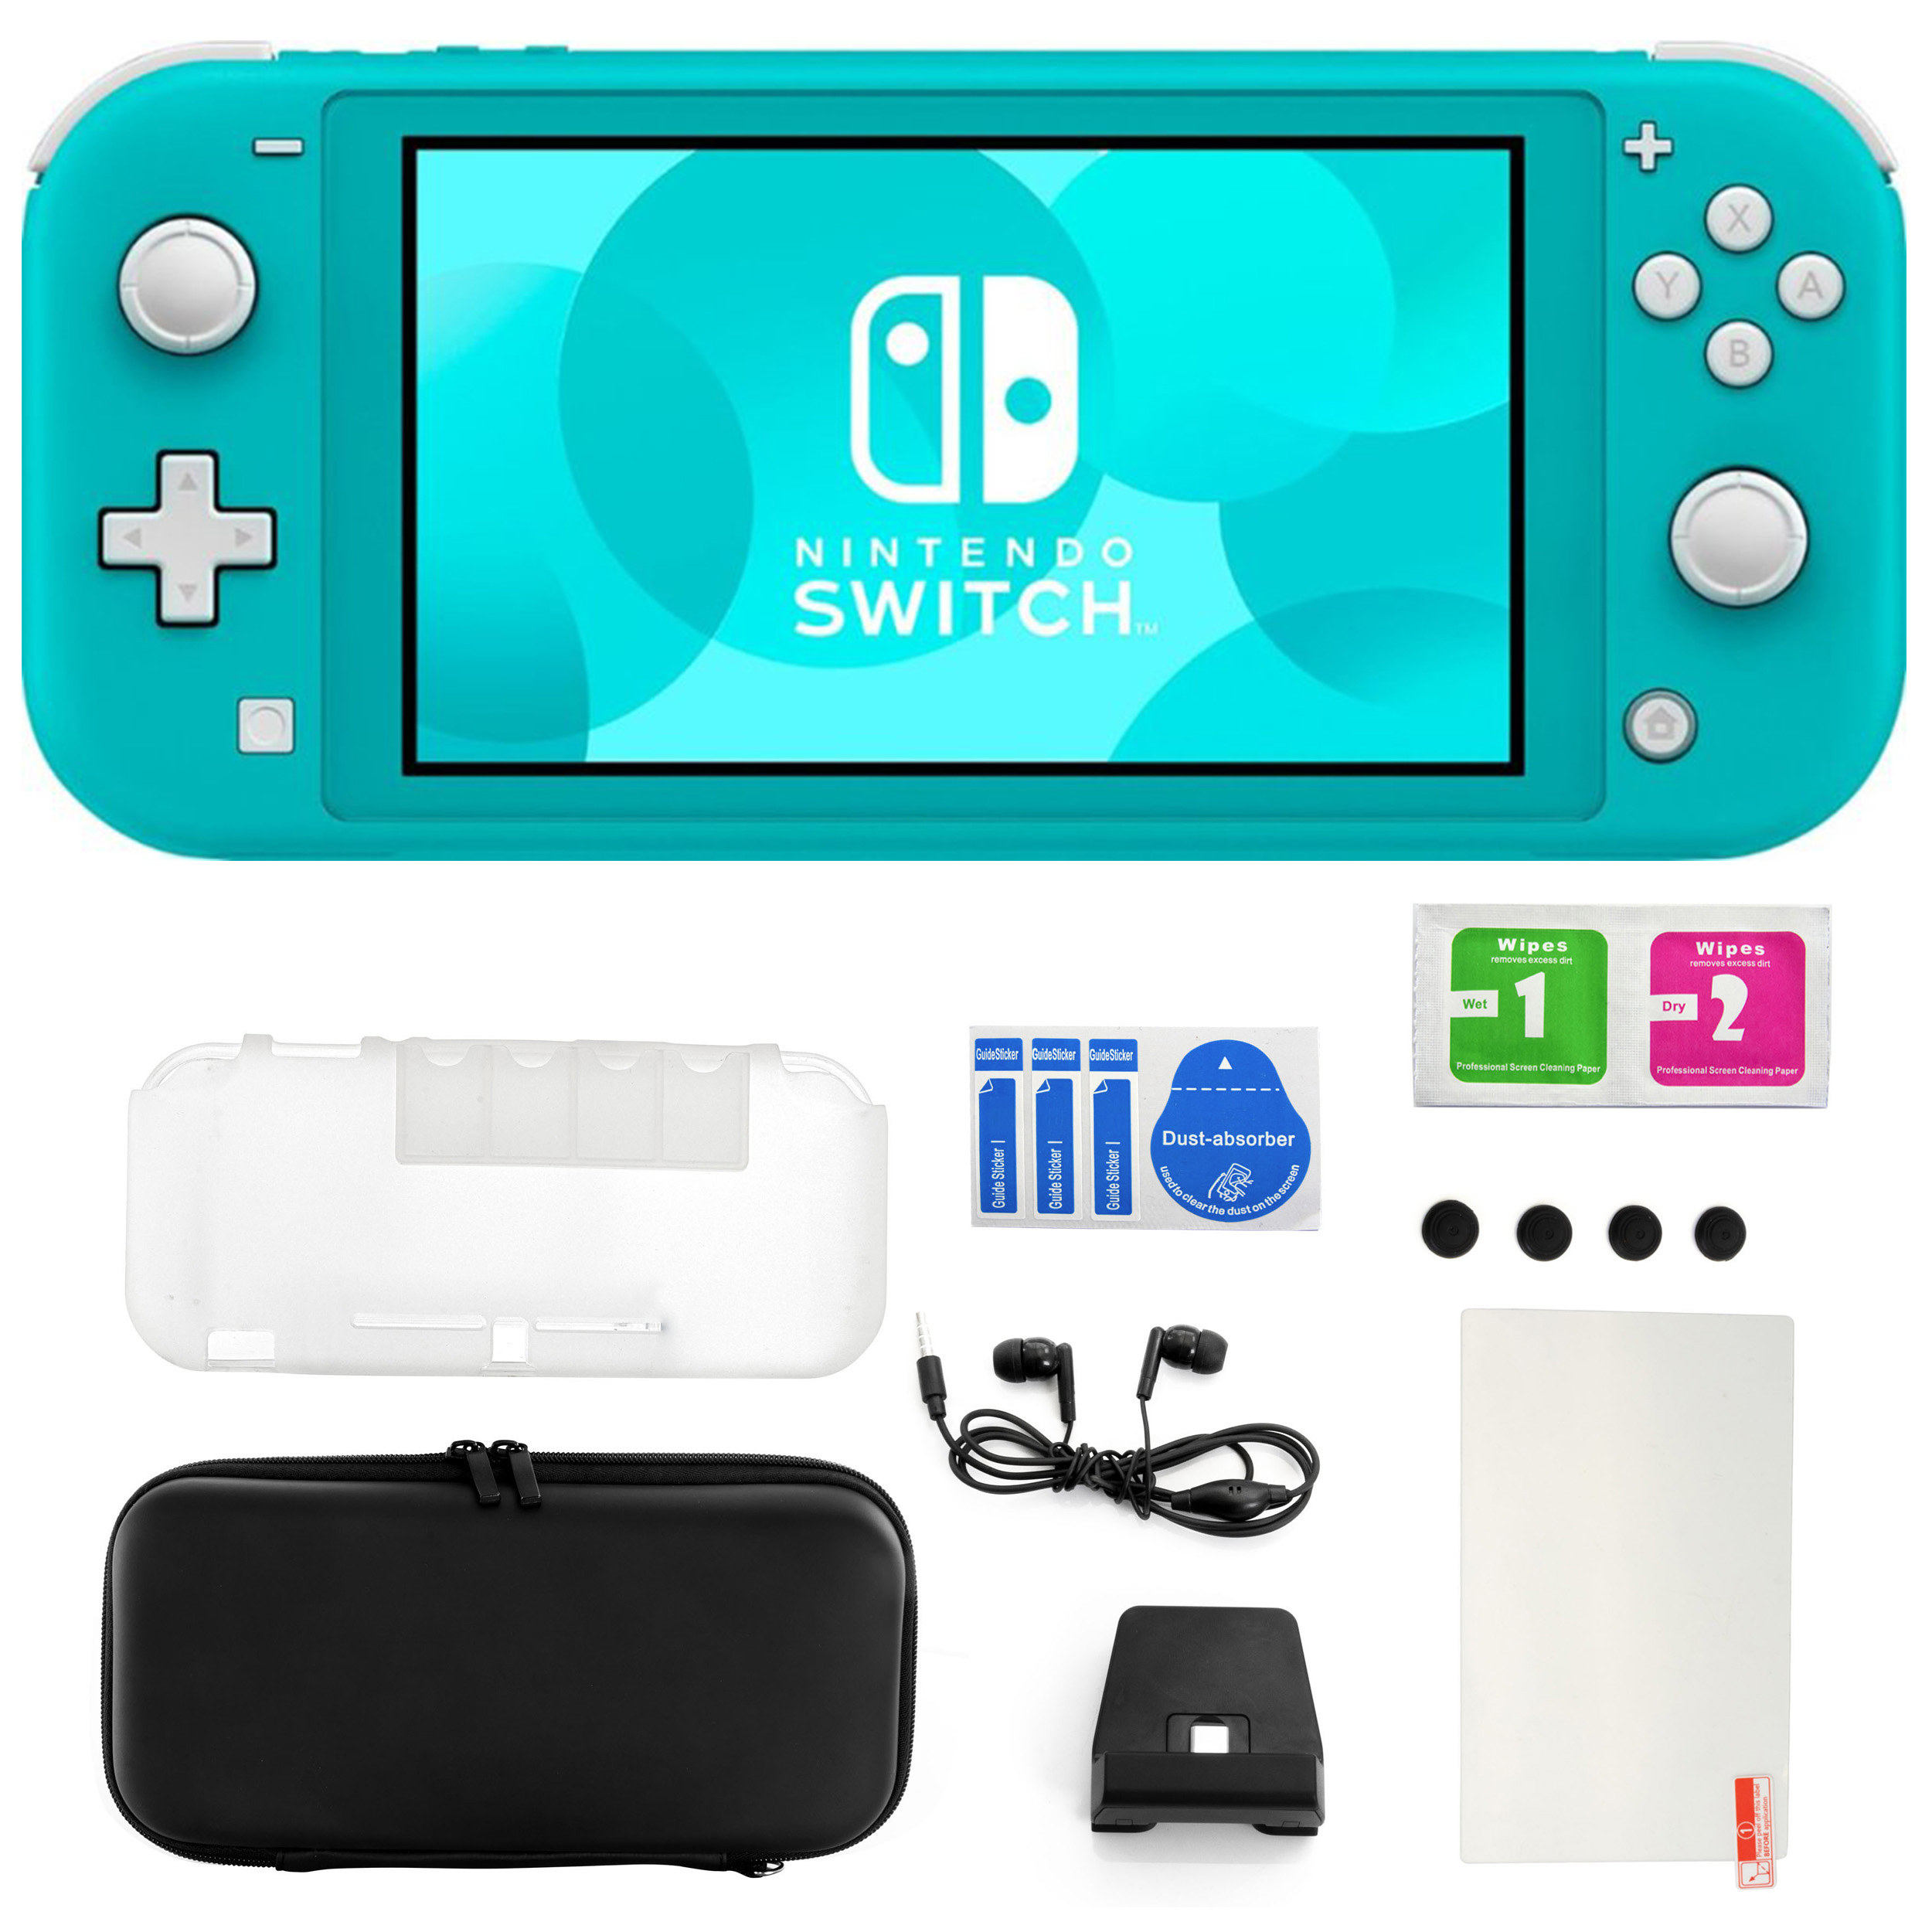 The turquoise Nintendo Switch with the various items that come in the kit